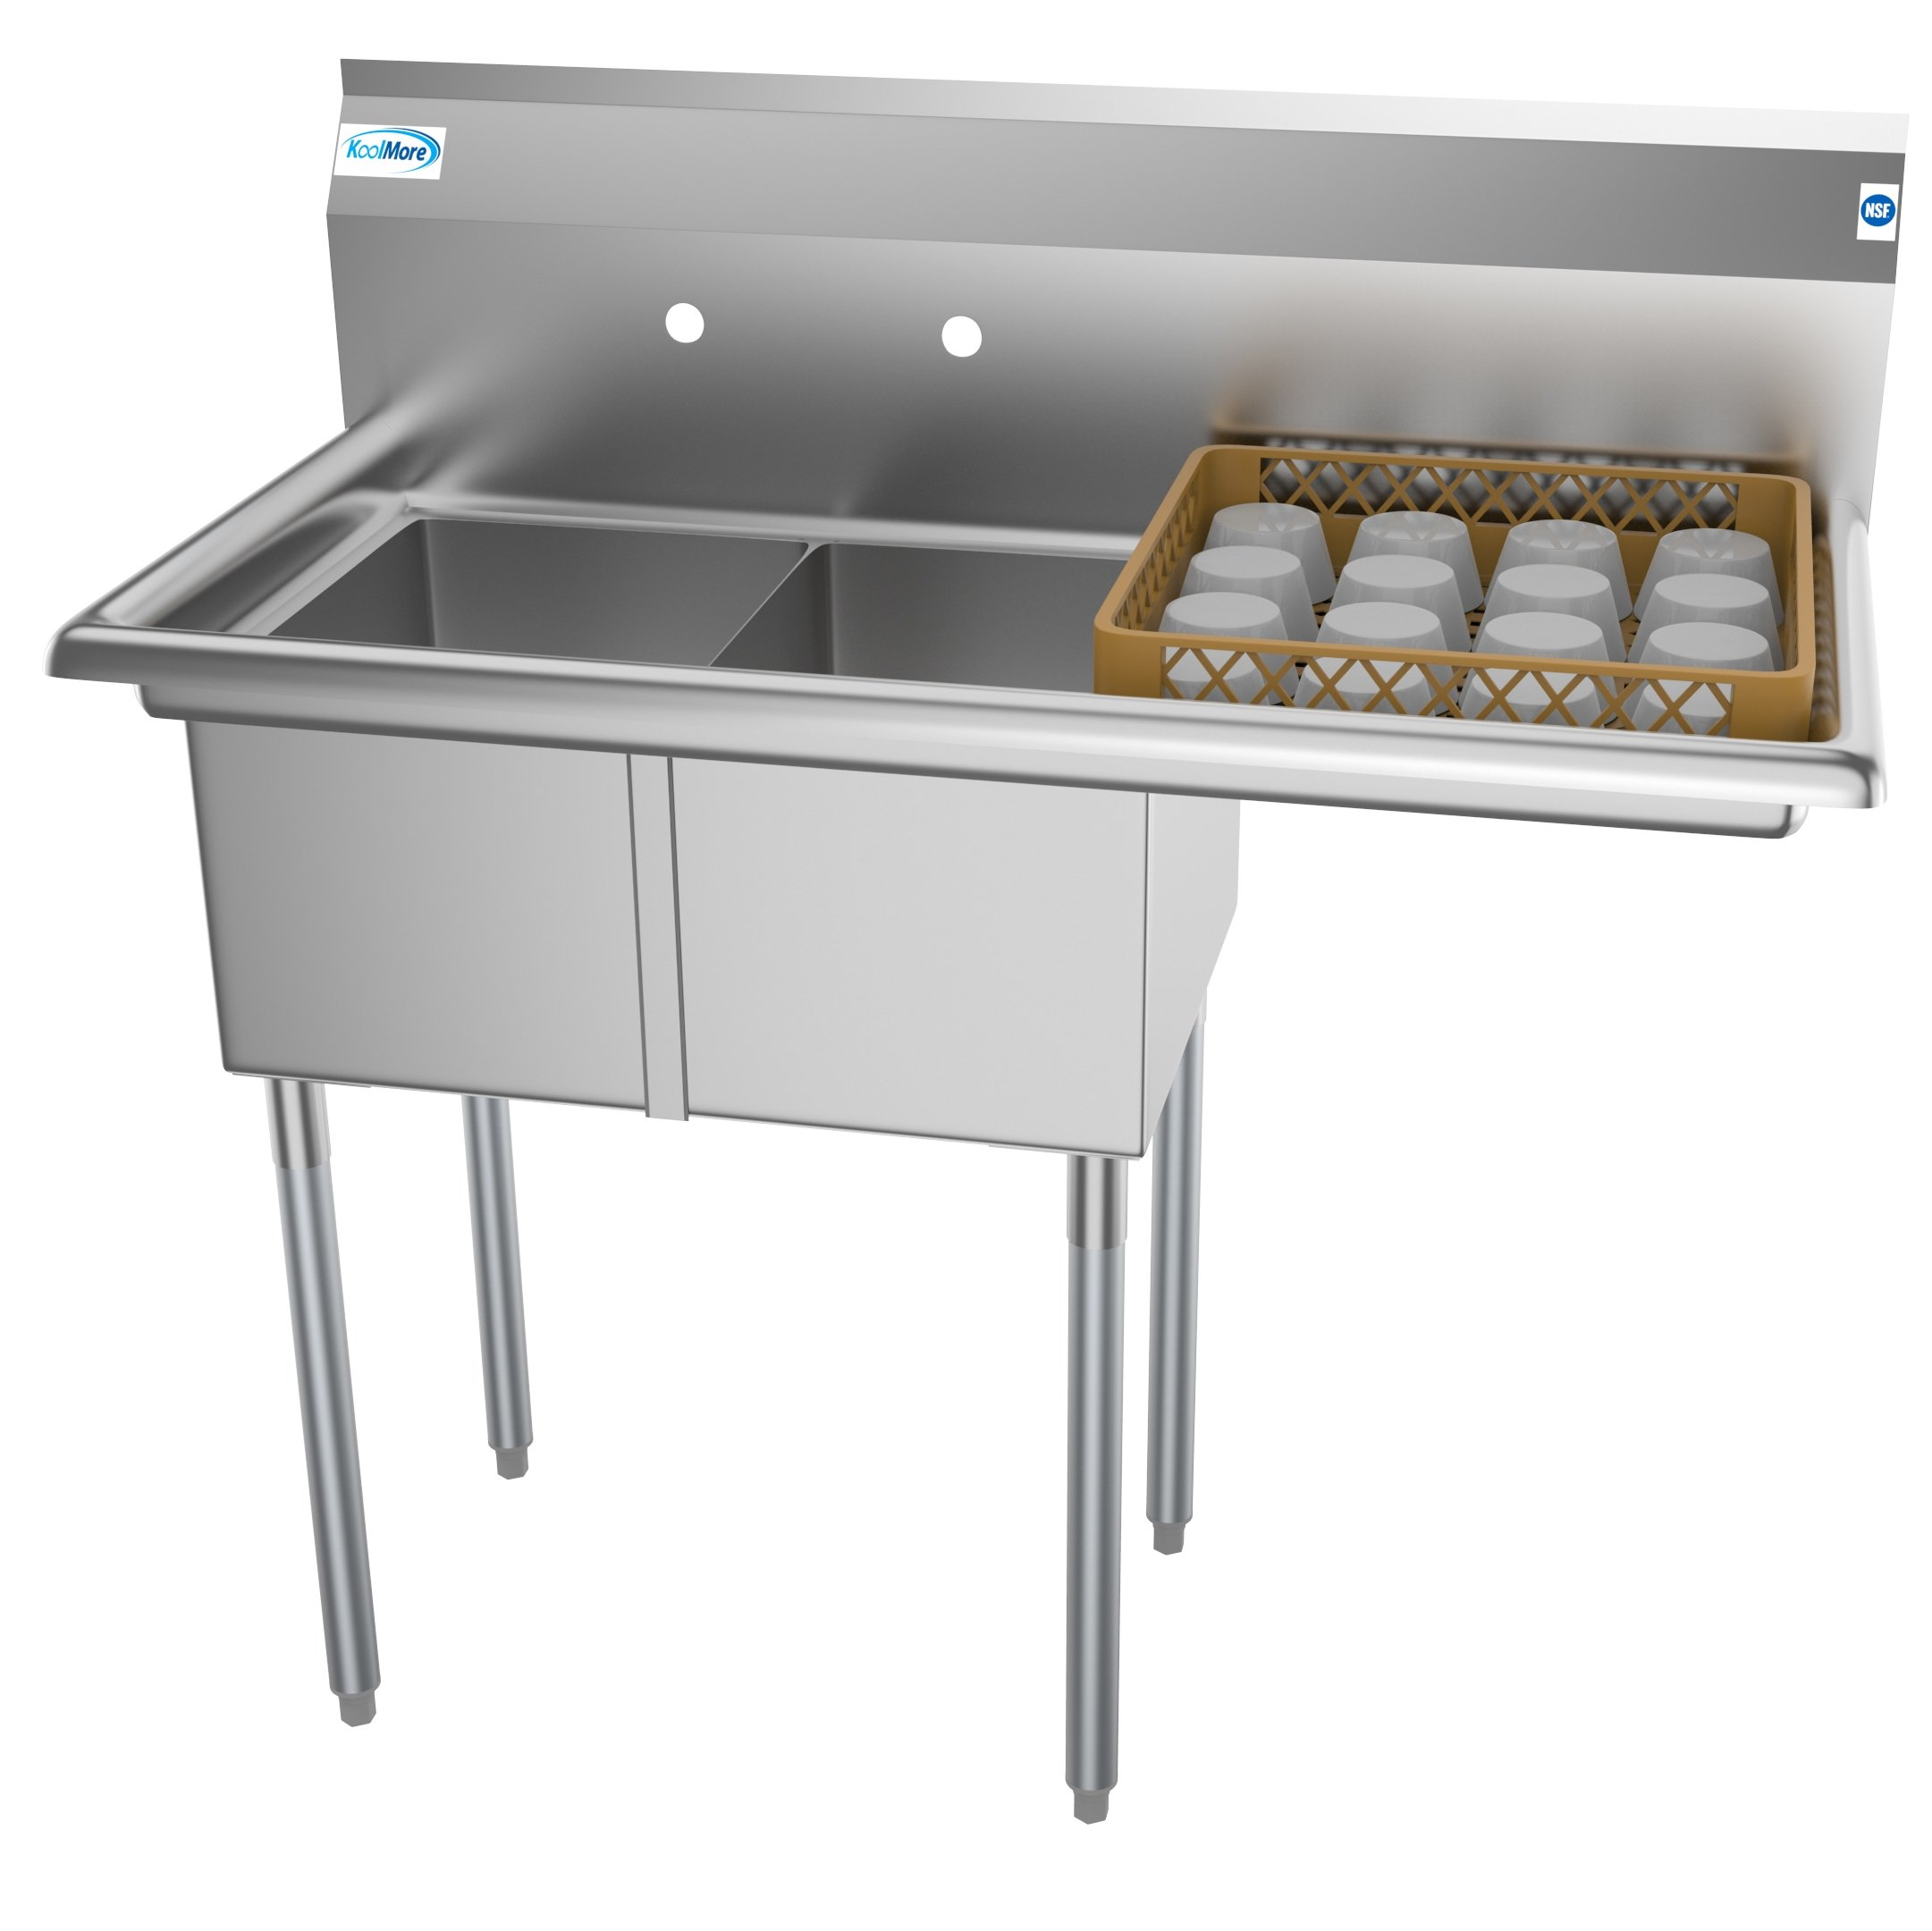 """2 Compartment 43"""" Stainless Steel Commercial Kitchen Prep & Utility Sink with Drainboard - Bowl Size 12"""" x 16"""" x 10"""""""